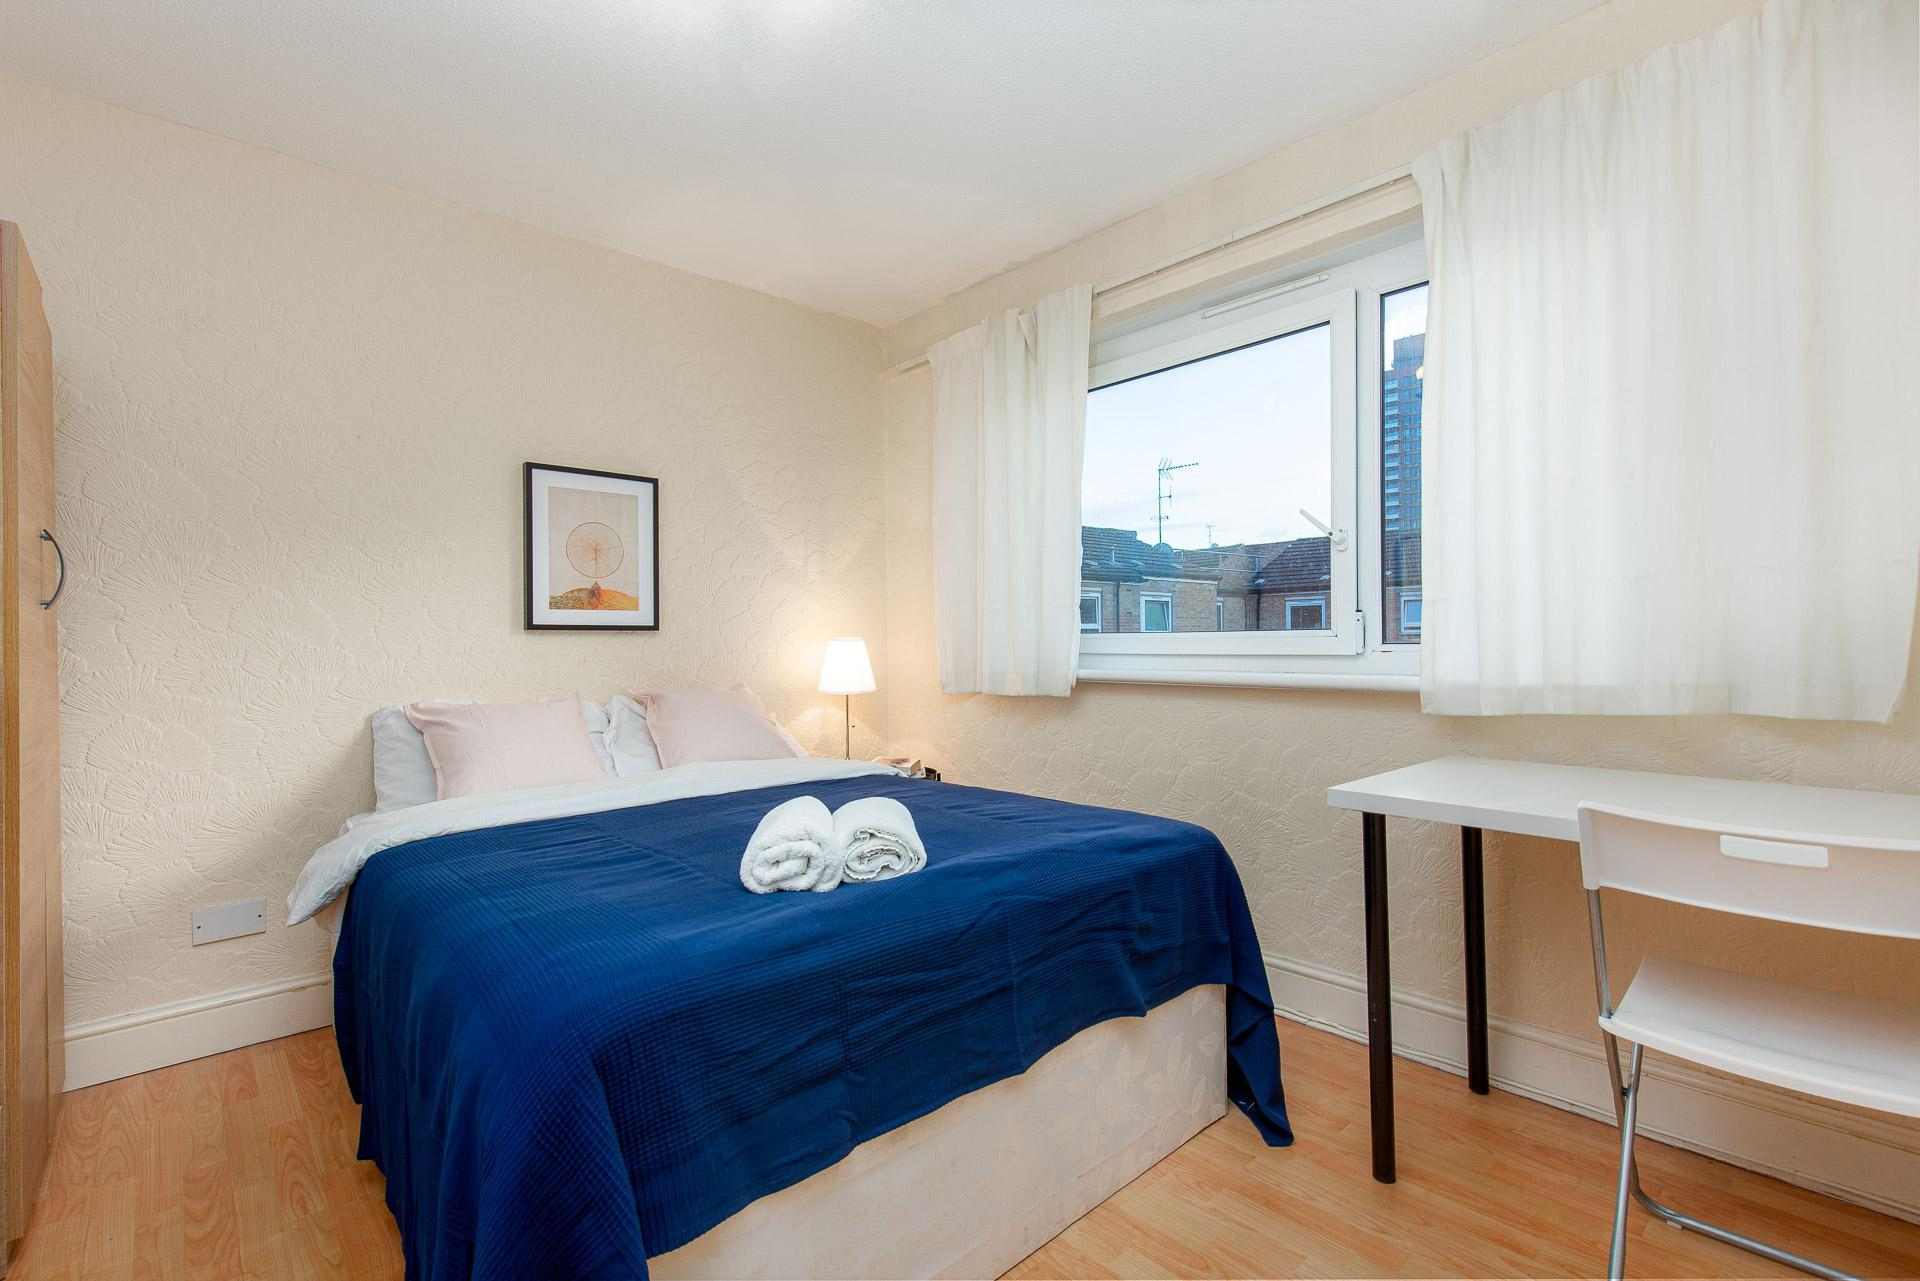 PATRICK CONNOLLY GARDENS - DELUXE GUEST ROOM 5